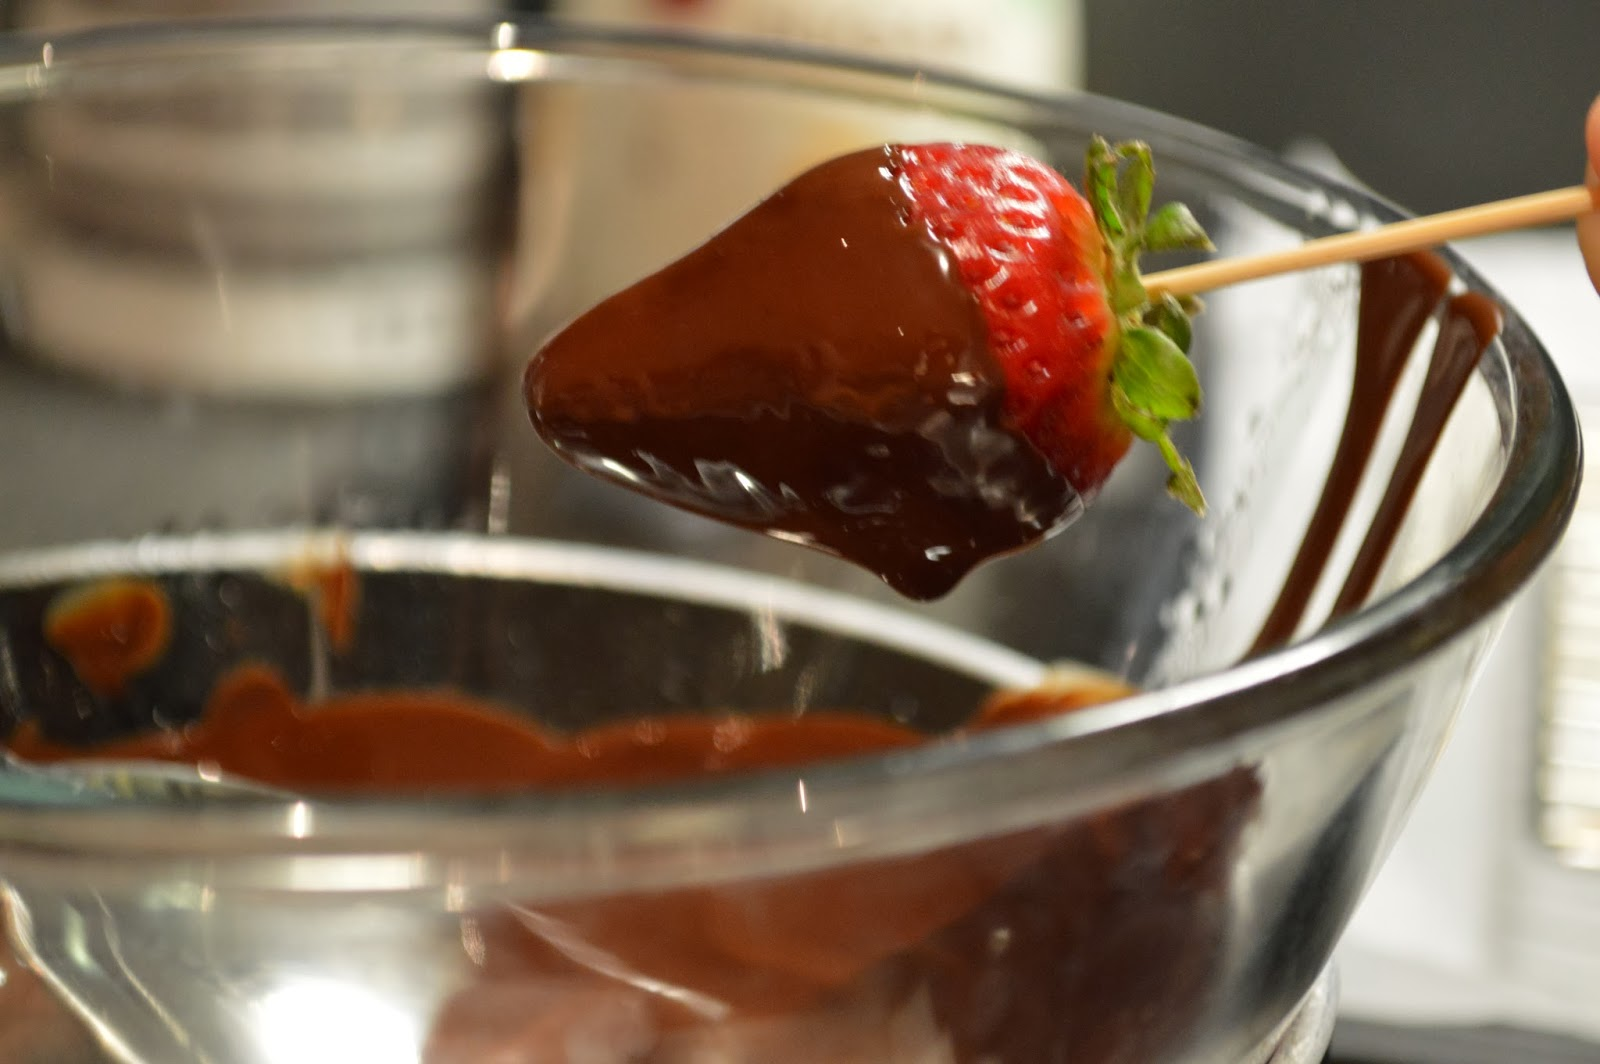 Dip strawberry in melted chocolate sauce